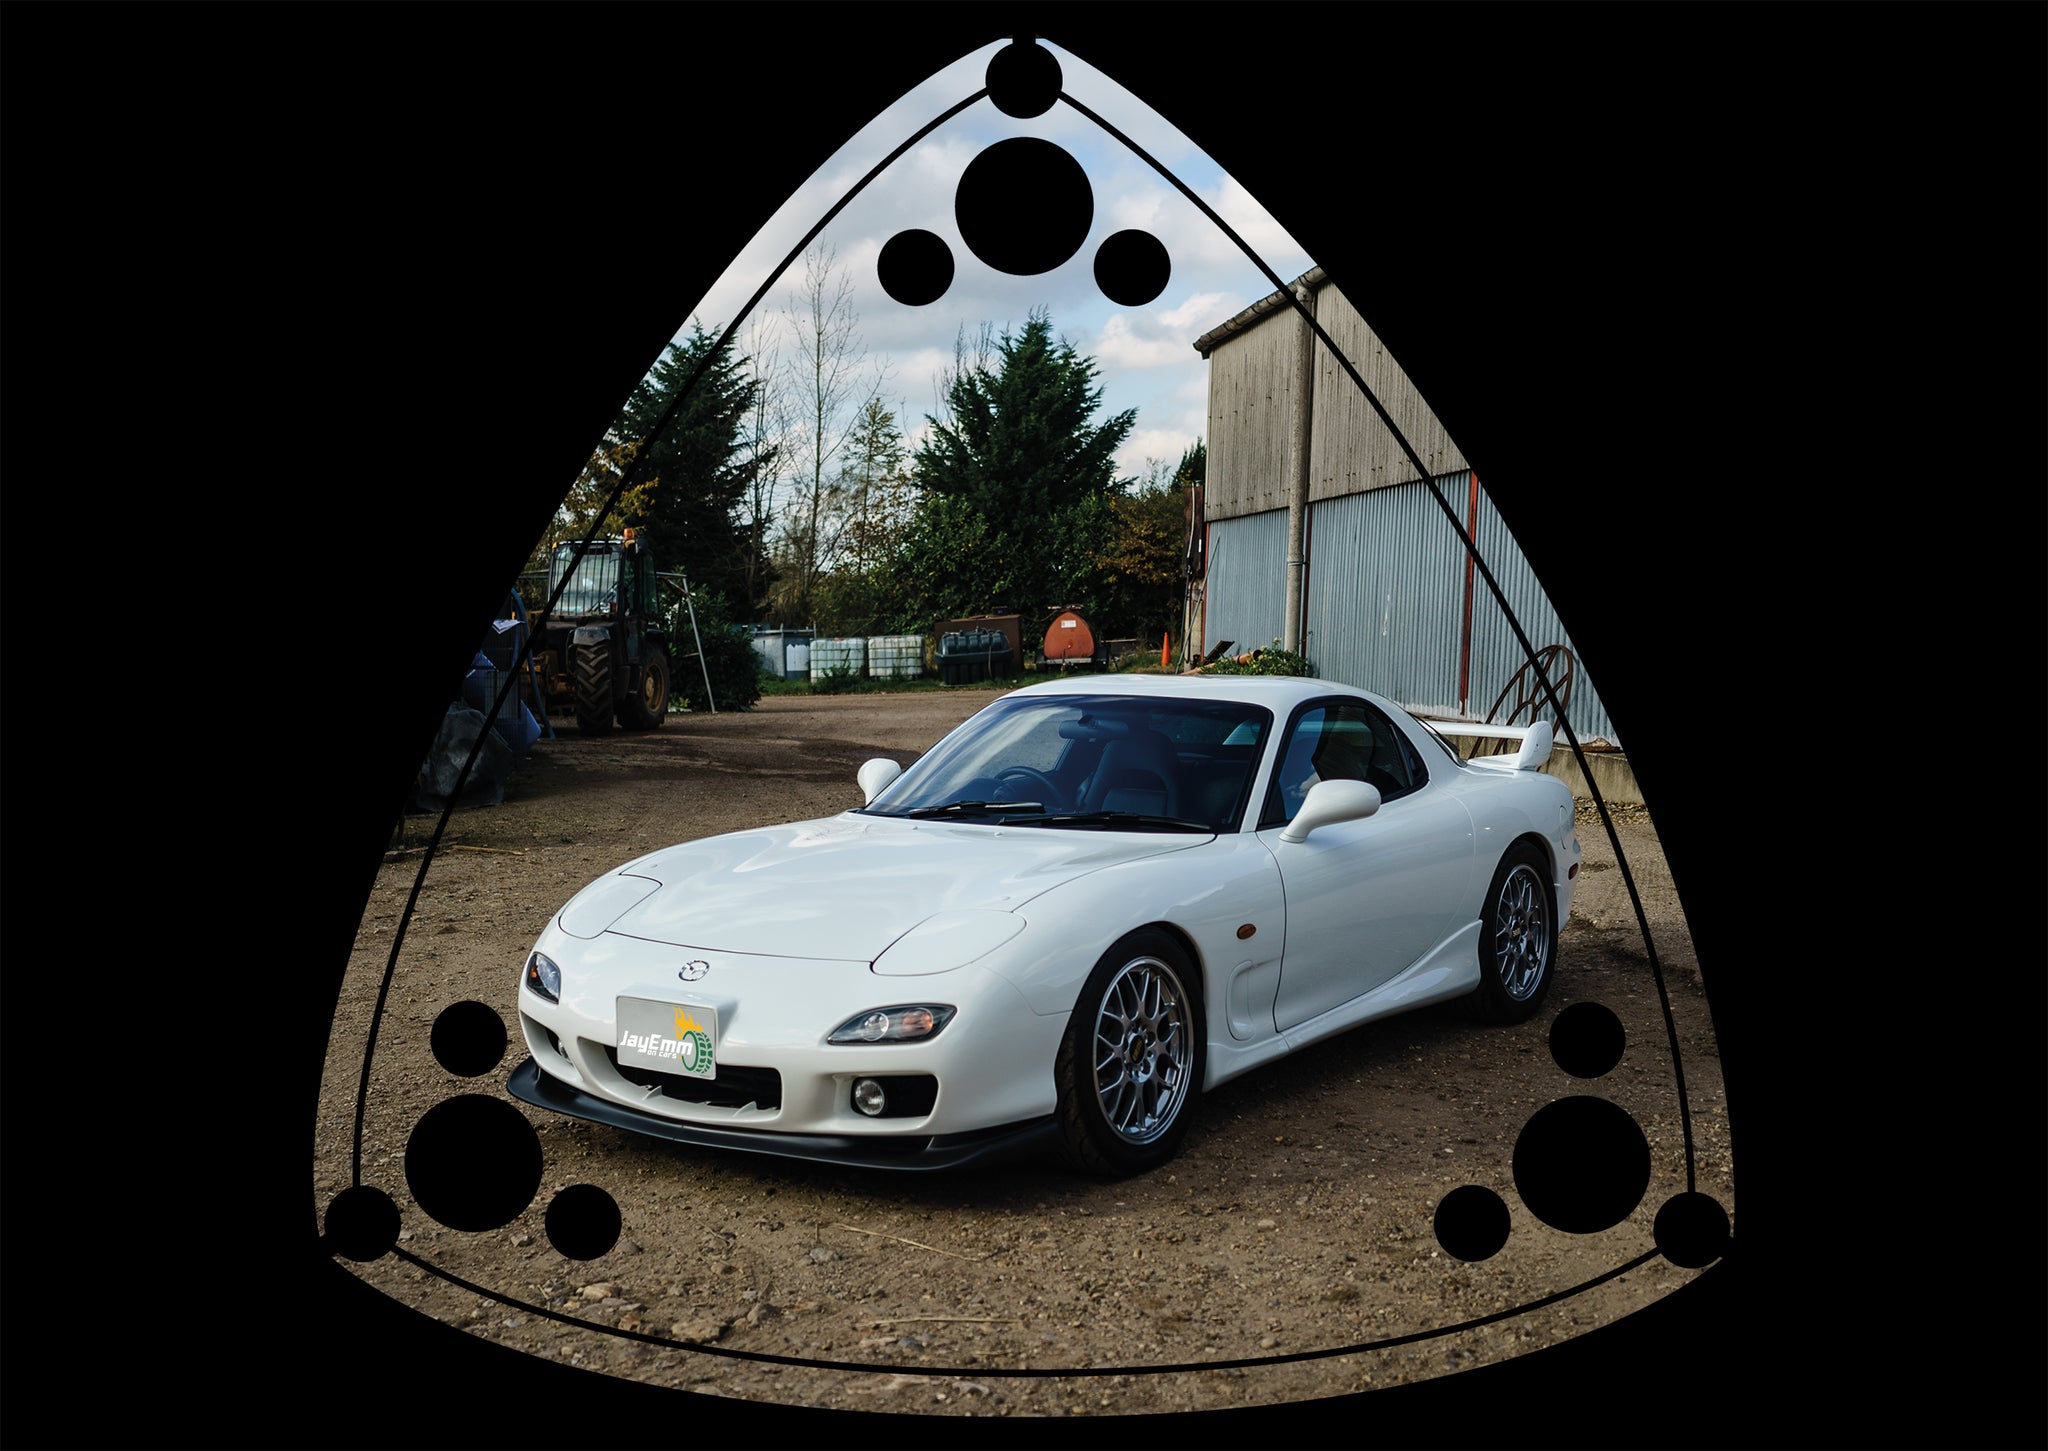 Mazda RX-7 Rotary Founder's Poster - Limited to 50 Copies! (A3)